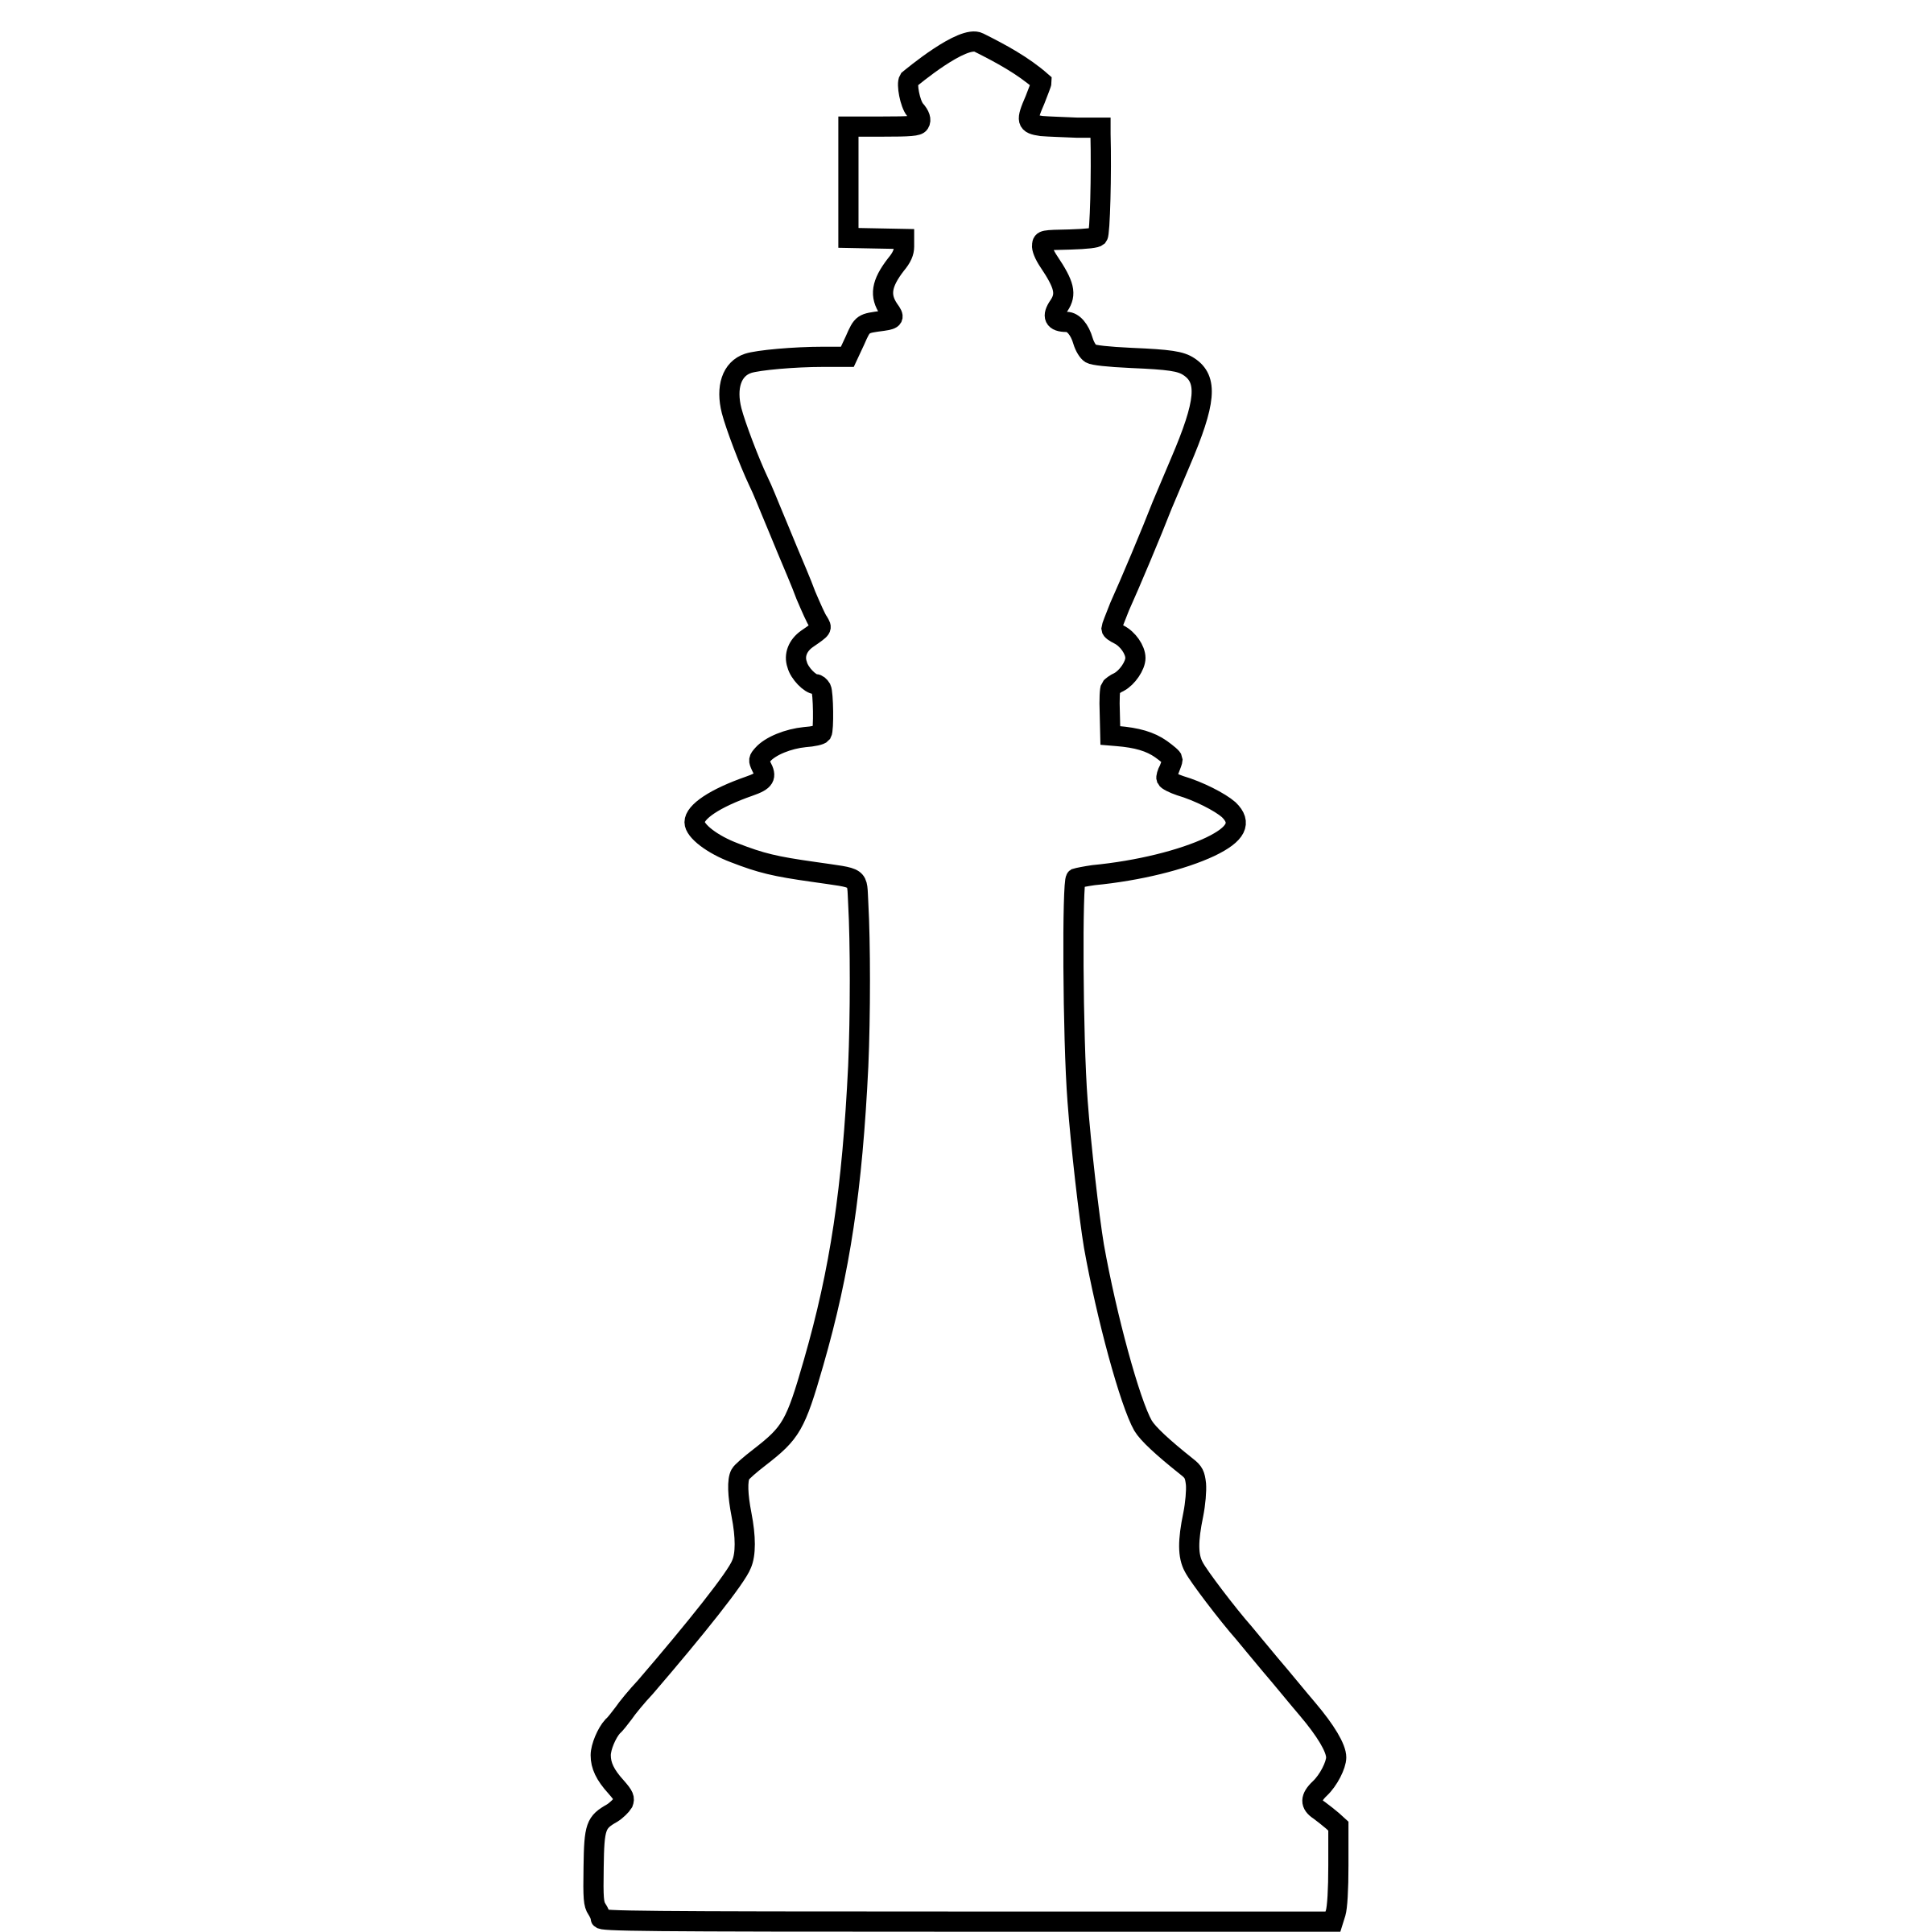 White Silhouette Chess Piece REMIX – King / Rey by DG-RA